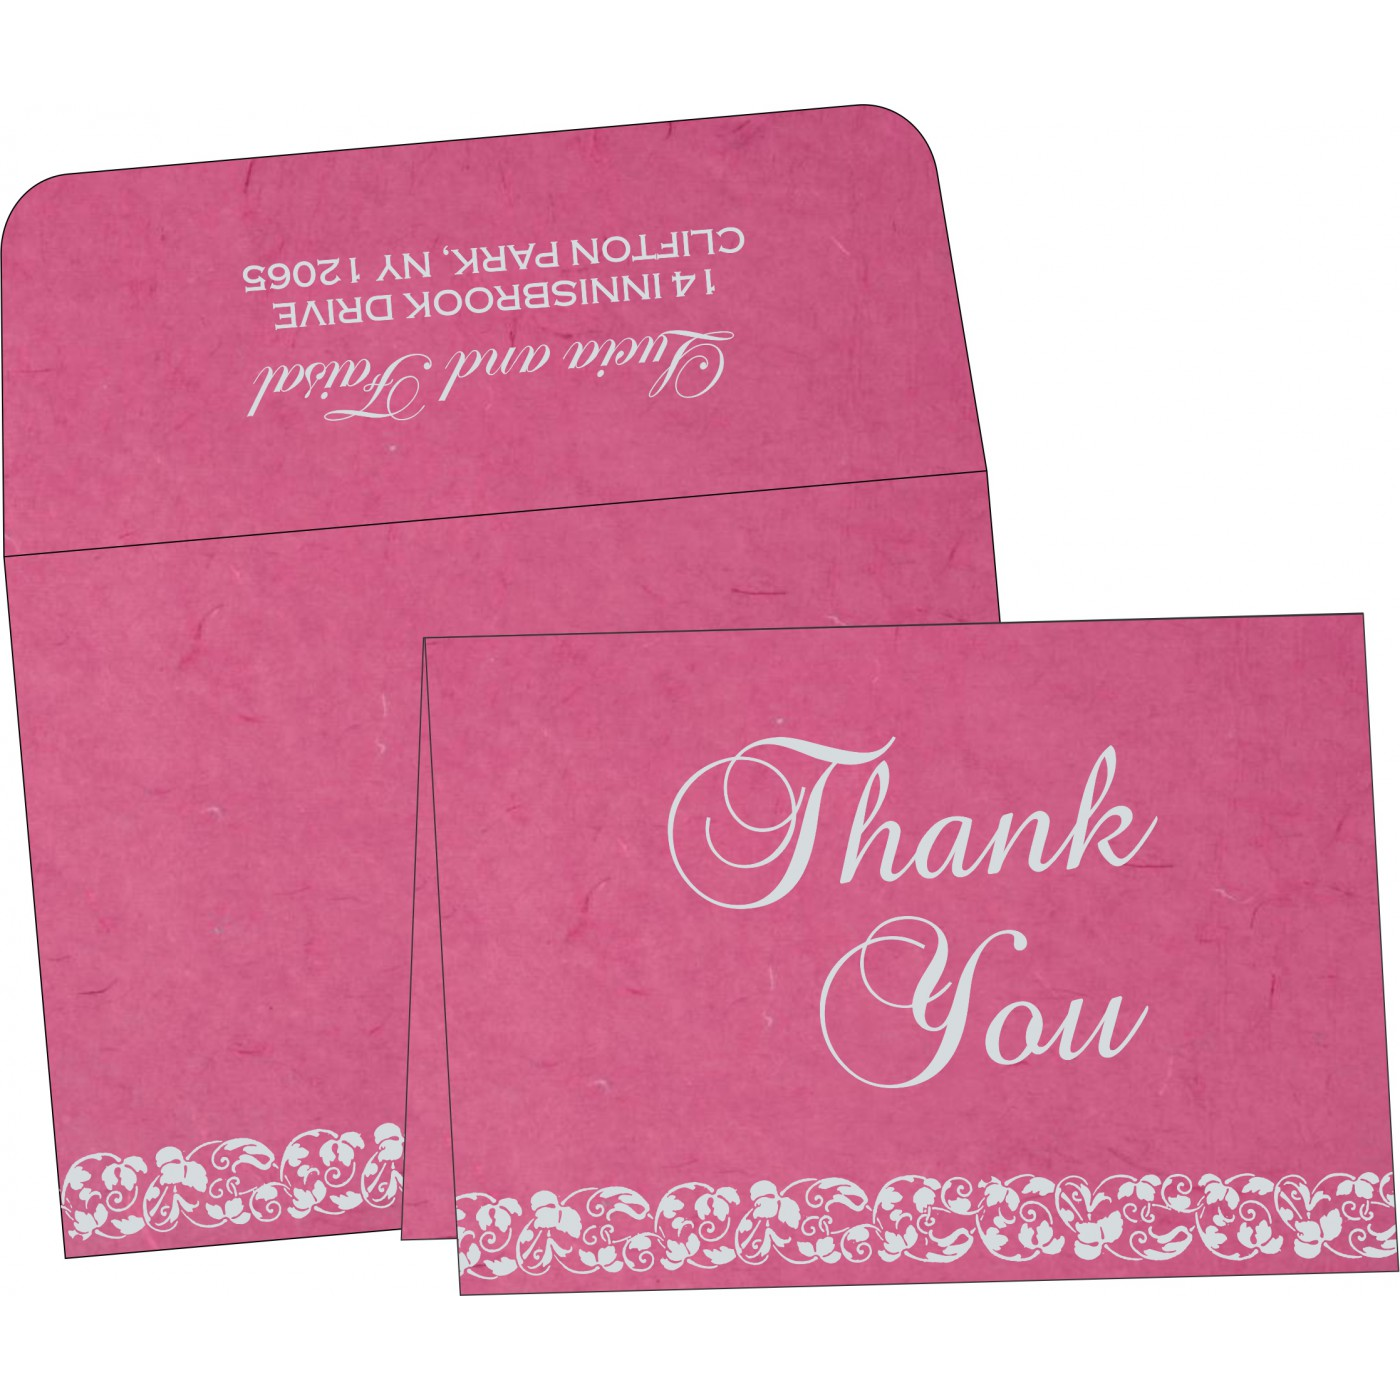 Thank You Cards : TYC-5006A - 123WeddingCards